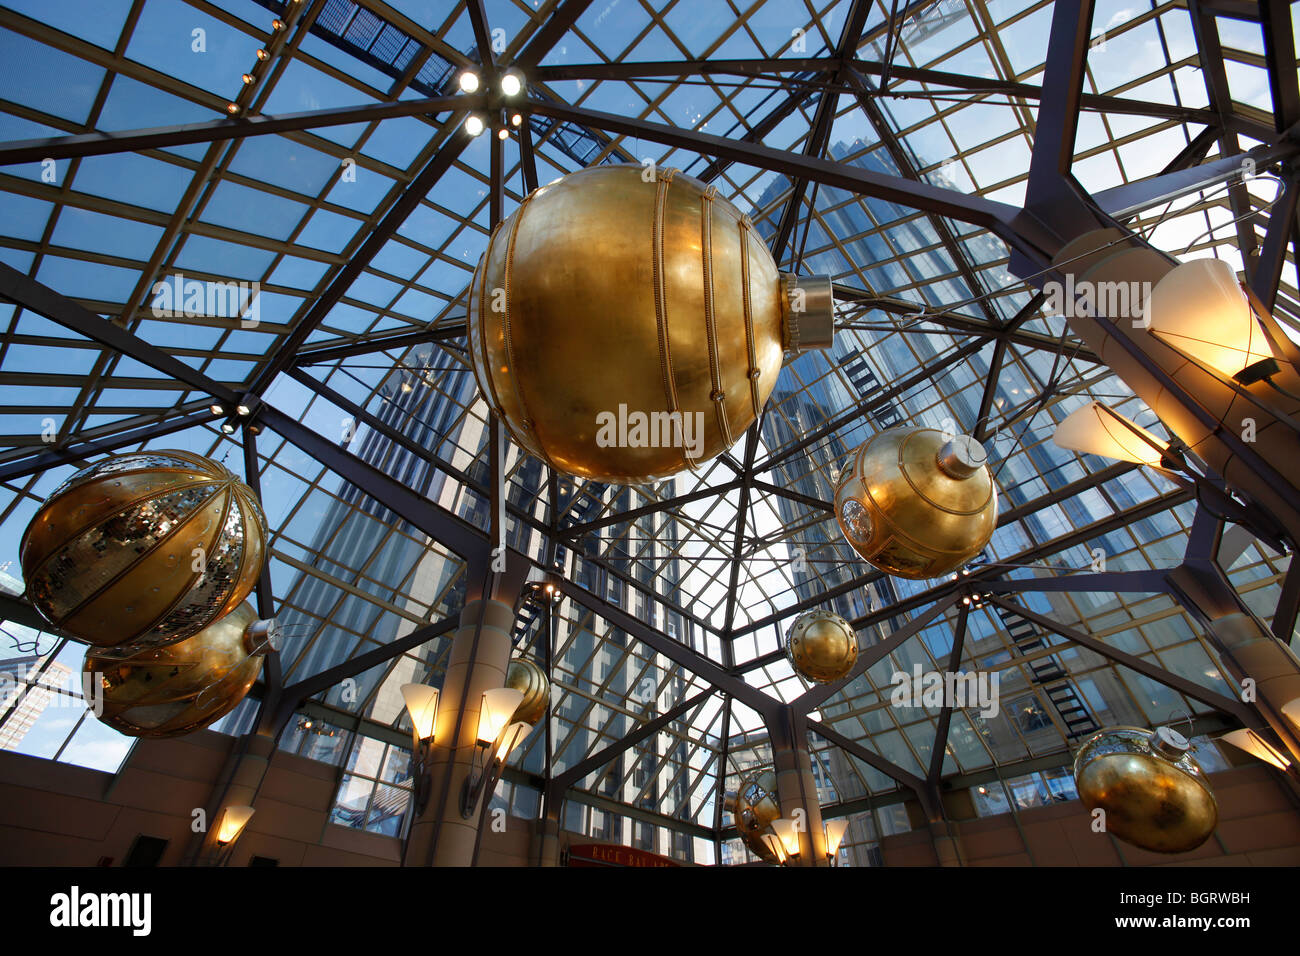 Christmas decorations, indoor shopping mall, Boston, Massachusetts - Stock Image